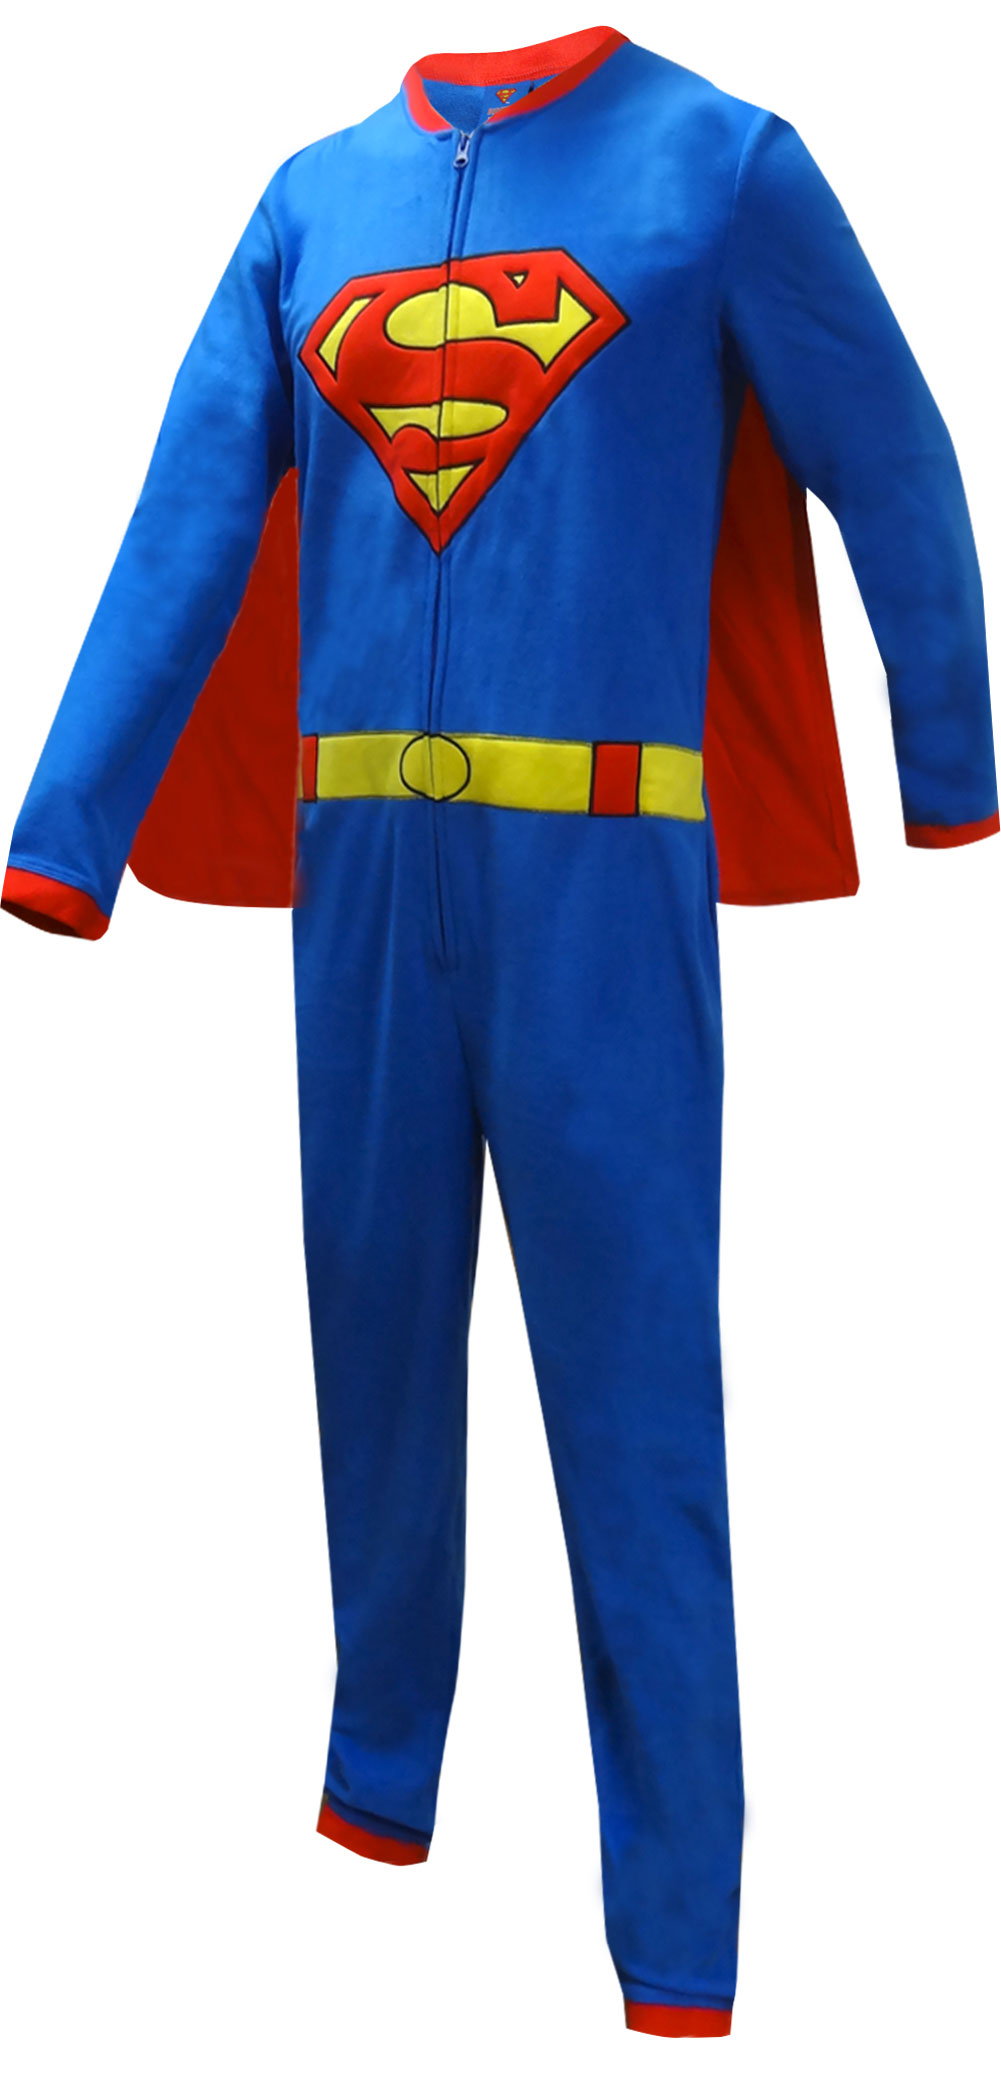 Always Be Yourself Unless You Can Superman Onesie, Superman Onesies®, Funny Onesie, Cute Baby Onesies, Custom Shower Gift, Boy Onesie MiniCreationz. 5 out of 5 stars Superhero Superman- matching onesies - boys tie and girls heart - Superman twin outfits - Baby Shower gift TheSportyTee. 5 out of 5 stars.